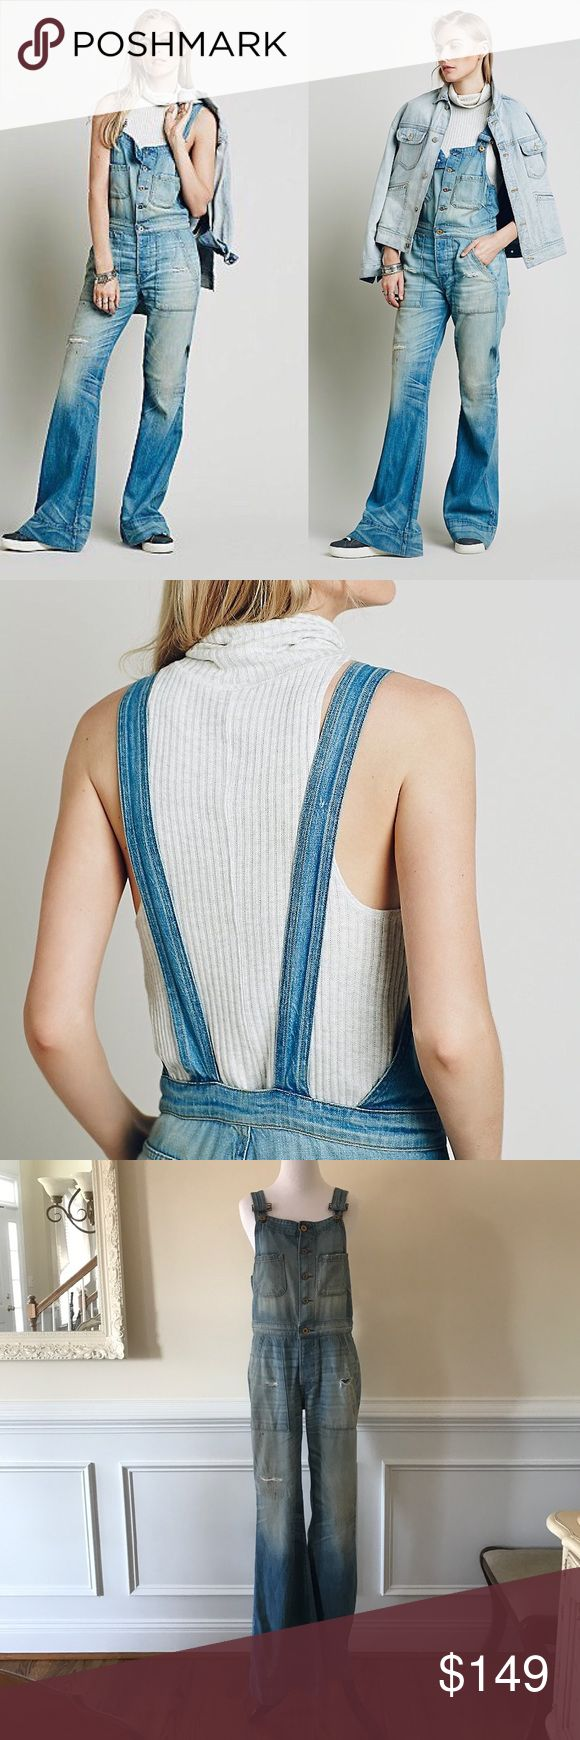 """🎉HP🎉New Free People NSF Coolidge Retro Overalls Super soft, distressed, and worn-in retro inspired one-piece featuring button-down closures. Four-pocket styling with wide legs. Low back with adjustable straps. Please note that the distressing includes whiskering, holes, and stains. NSF  These overalls are a sample and are new and never worn. They were purchased at the manufacturer's outlet center. No size tag is attached, but by all measurements I estimate a small. Inseam approx. 33 1/2""""…"""